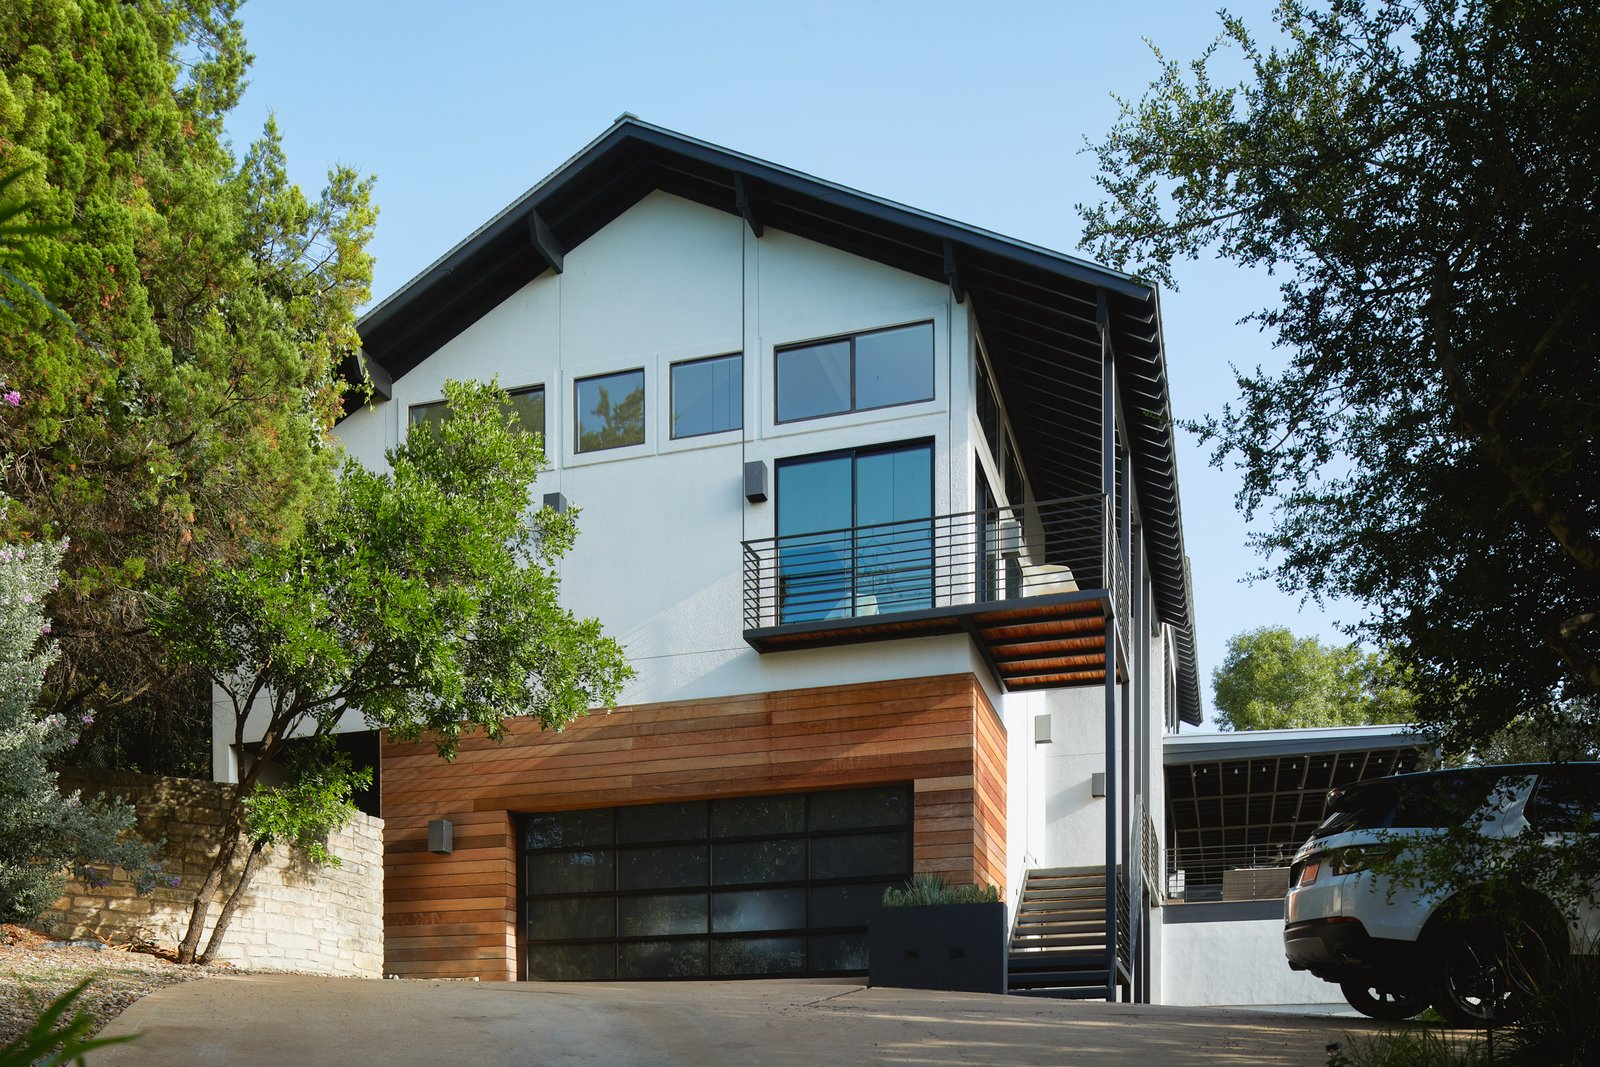 Exterior, Stucco Siding Material, Wood Siding Material, House Building Type, and Metal Roof Material Via Media Residence by Matt Fajkus Architecture   Photo by Leonid Furmansky  Via Media Residence by Matt Fajkus Architecture